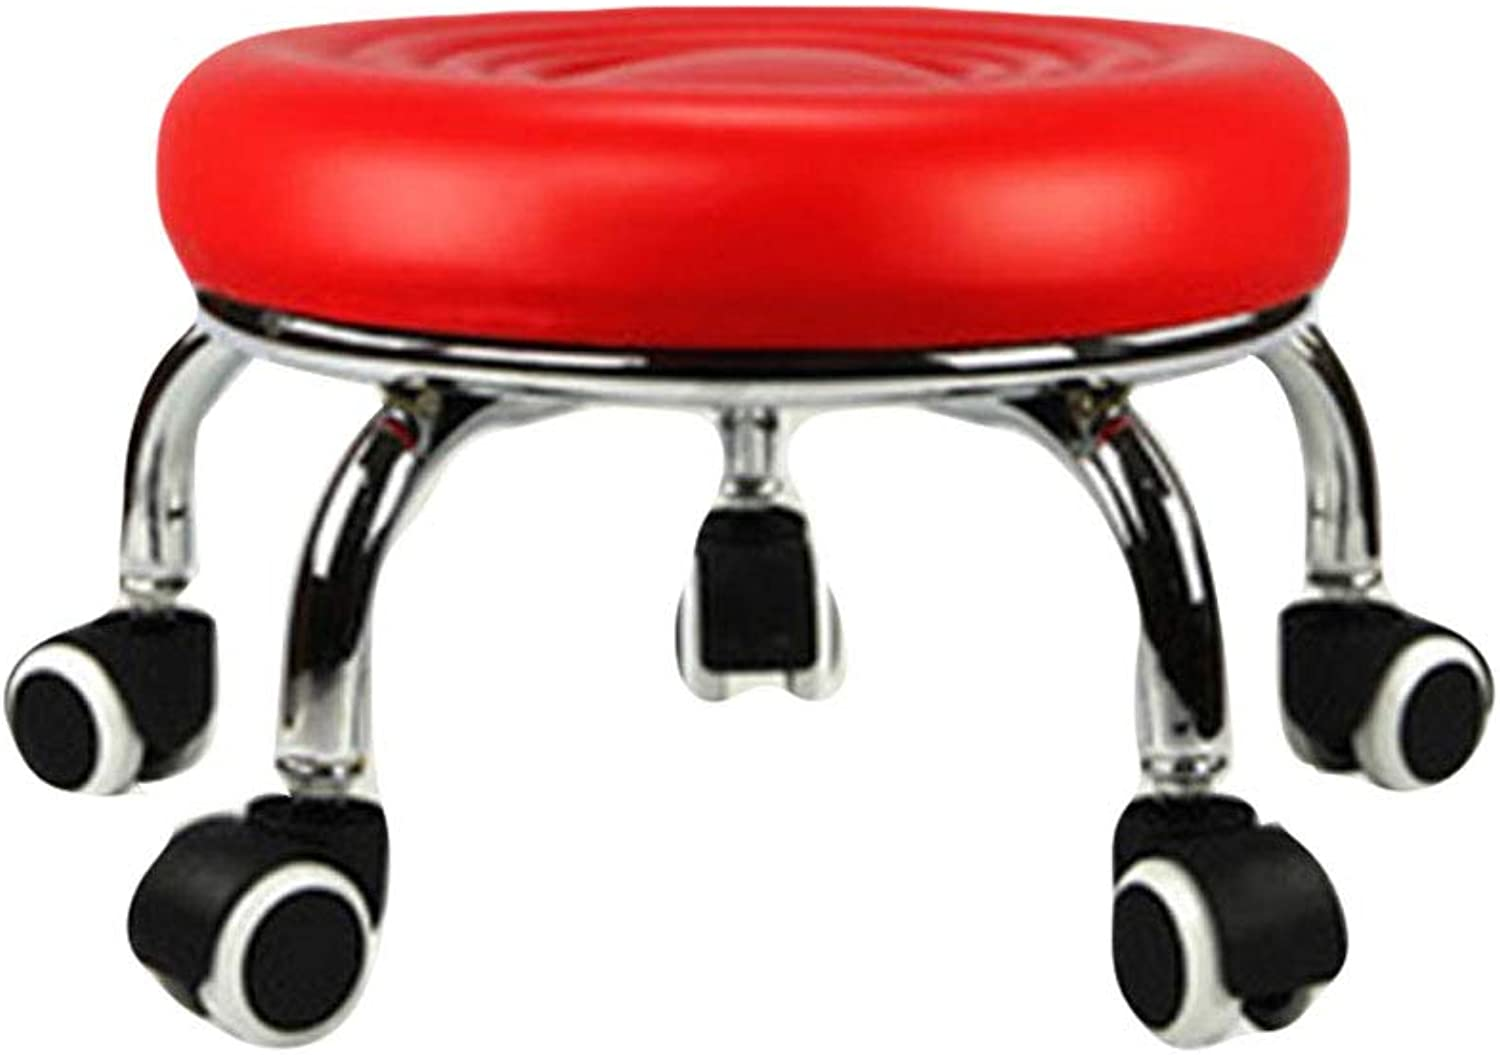 Pulley Stool Wheeled Chair Step Low Footstool redatable Beauty Chair Multi Purpose for Toddler Kids Adult Old Man for Living Room, Bedroom, Kitchen, Bathroom,Red,33(D)23(H) cm